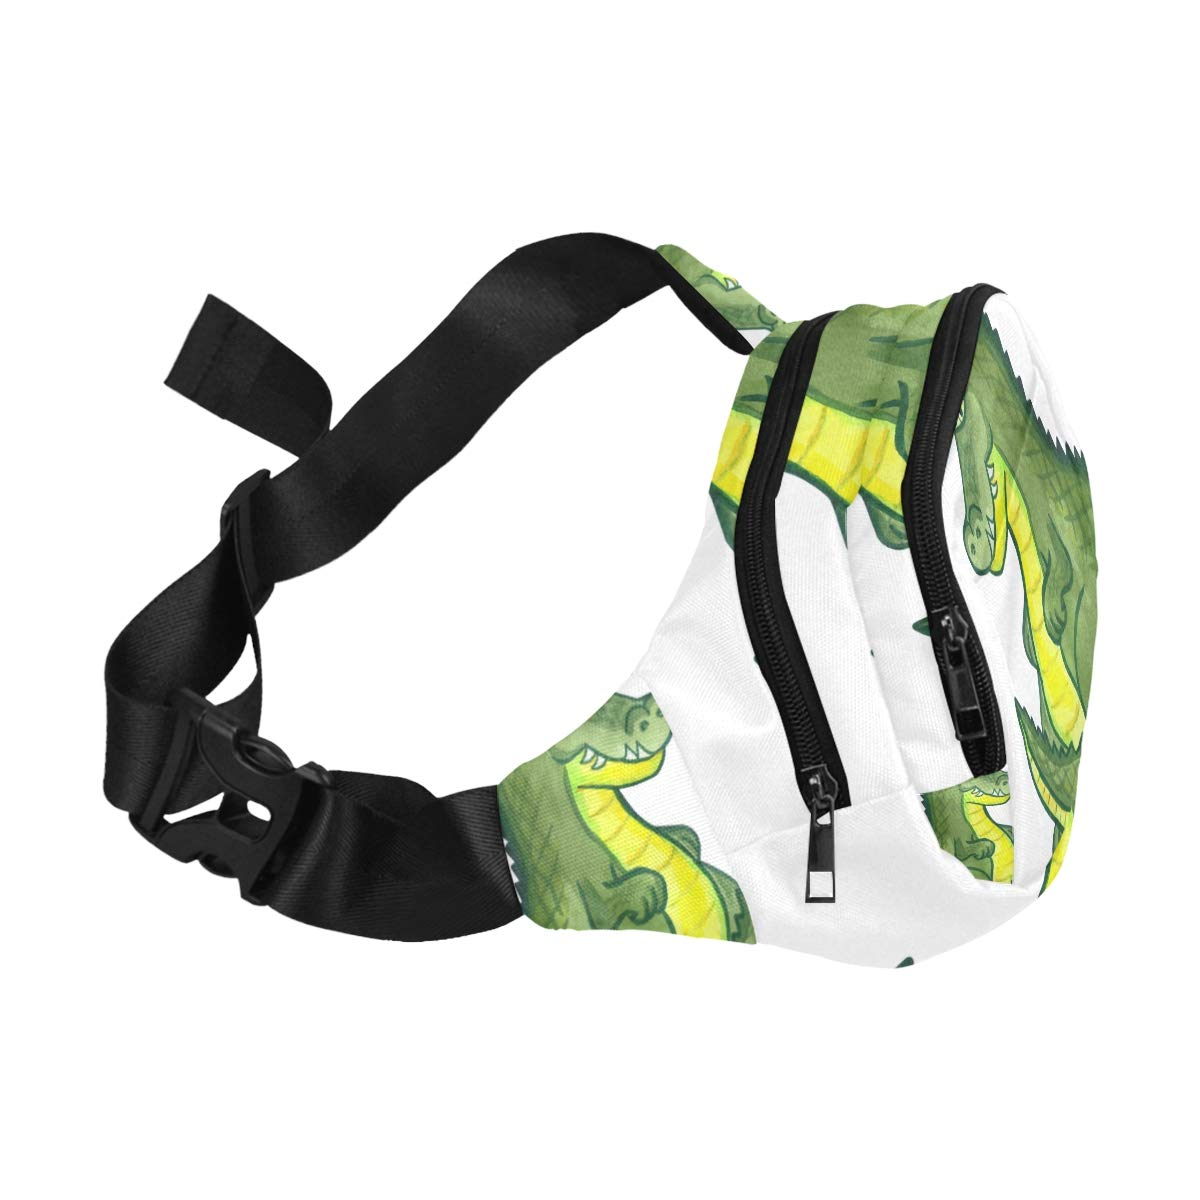 Alligator And Cactus Fenny Packs Waist Bags Adjustable Belt Waterproof Nylon Travel Running Sport Vacation Party For Men Women Boys Girls Kids